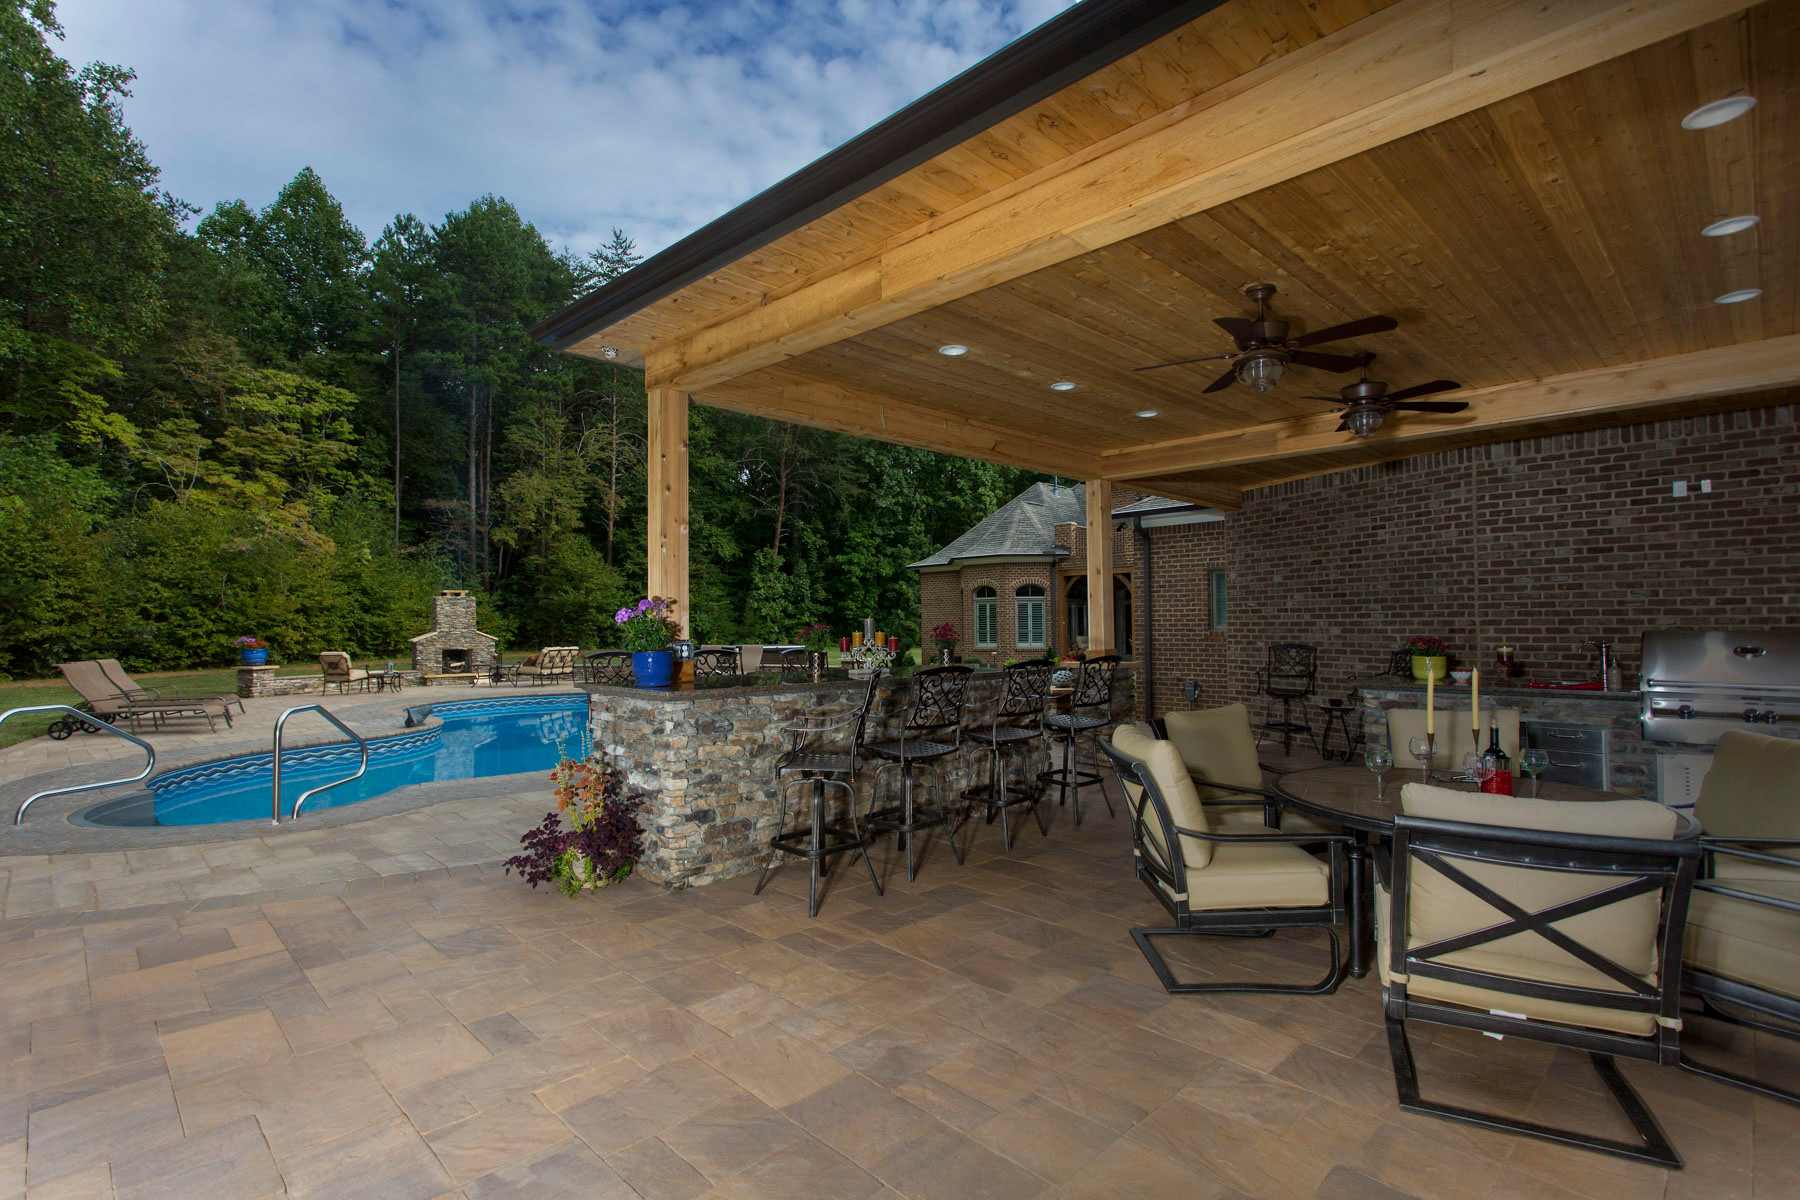 Pool patio and outdoor living space